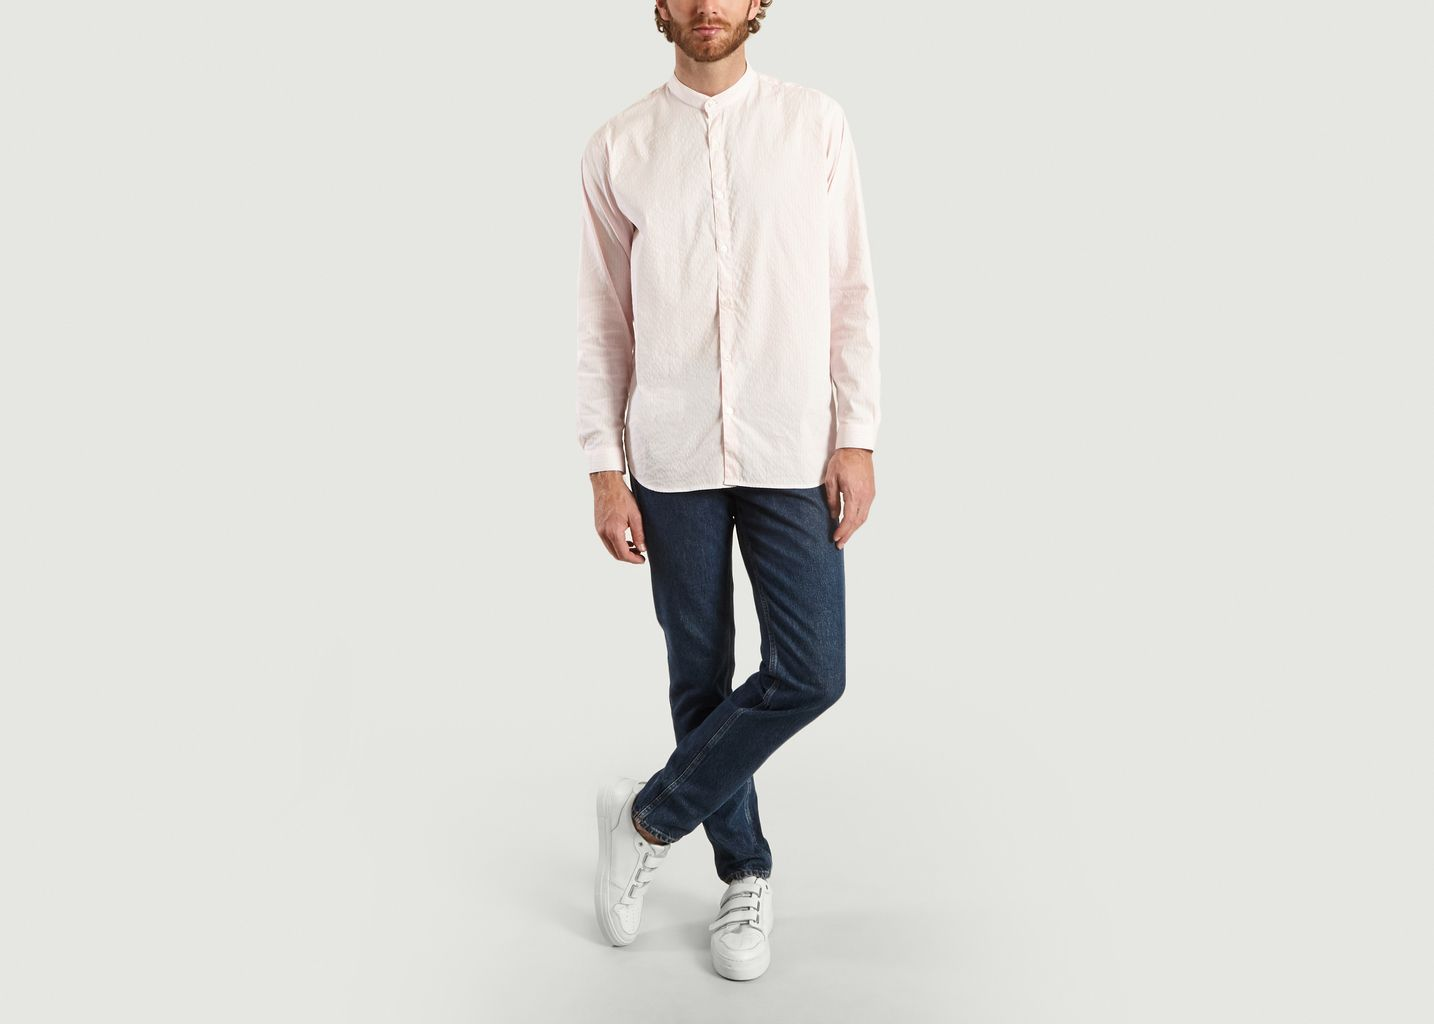 Norse Projects Homme | L'Exception